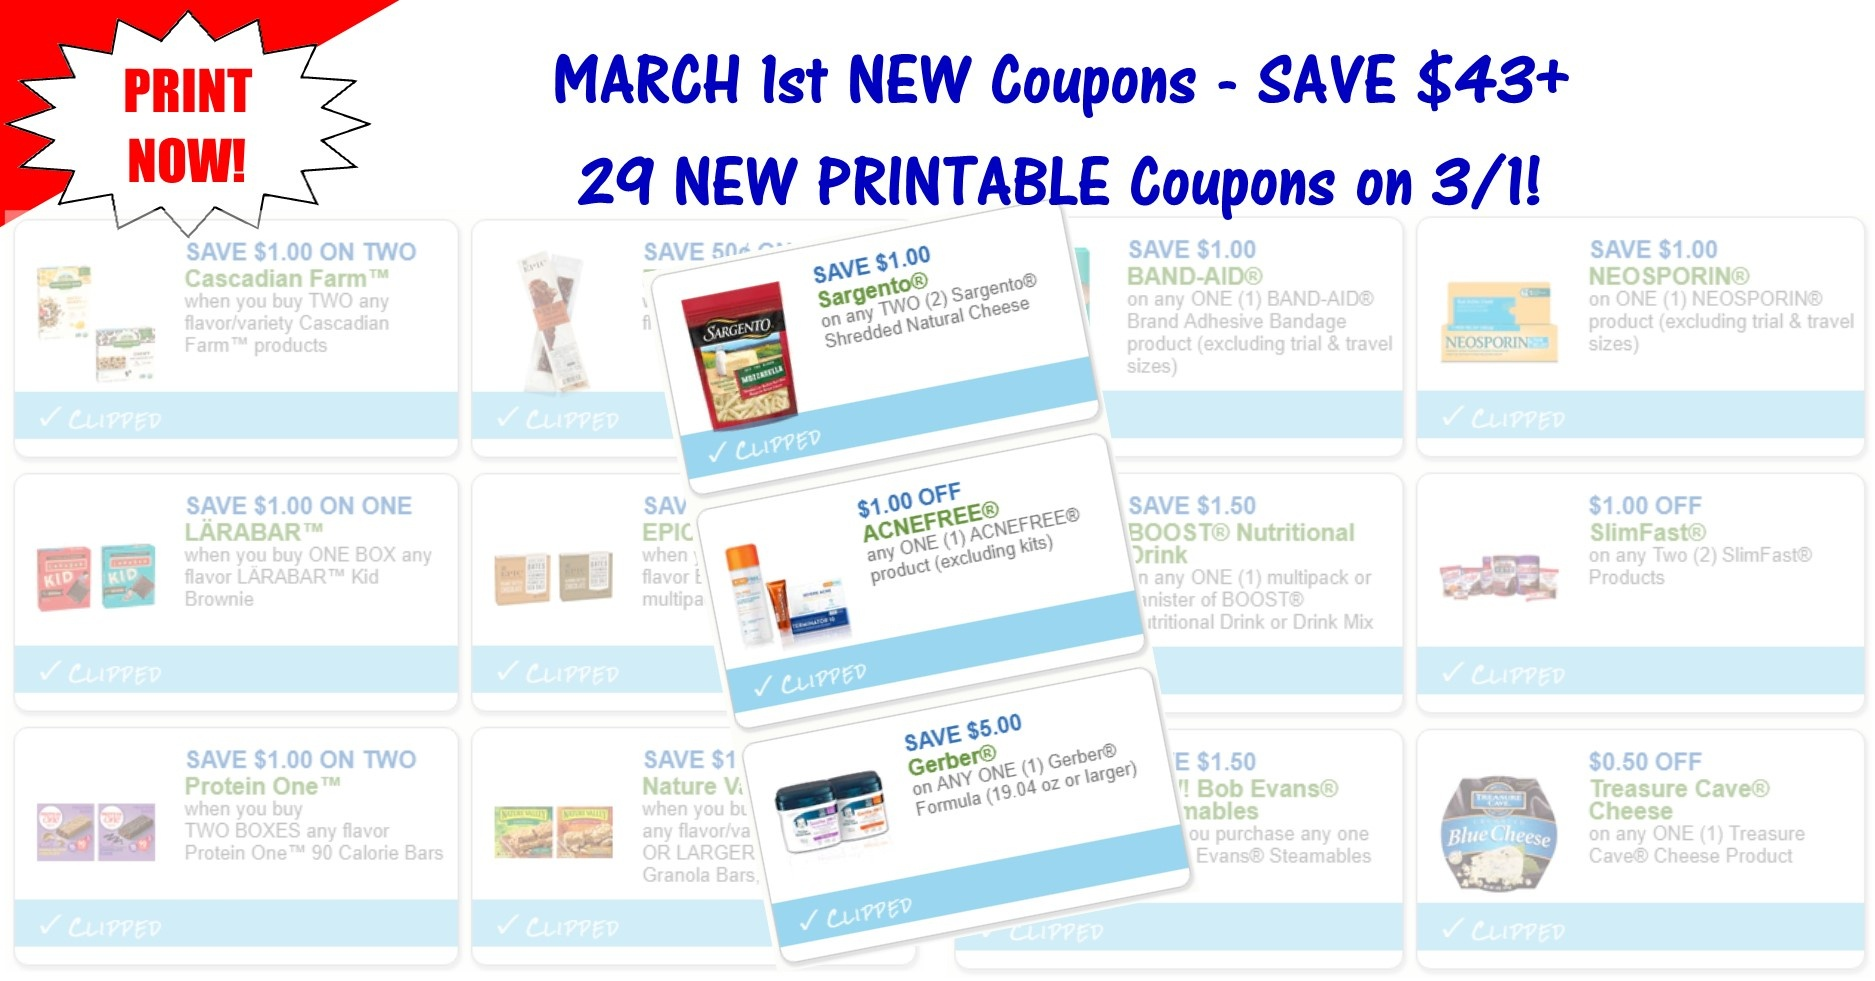 29 New Printable Coupons ~ March 1St New Coupons! - Acne Free Coupons Printable